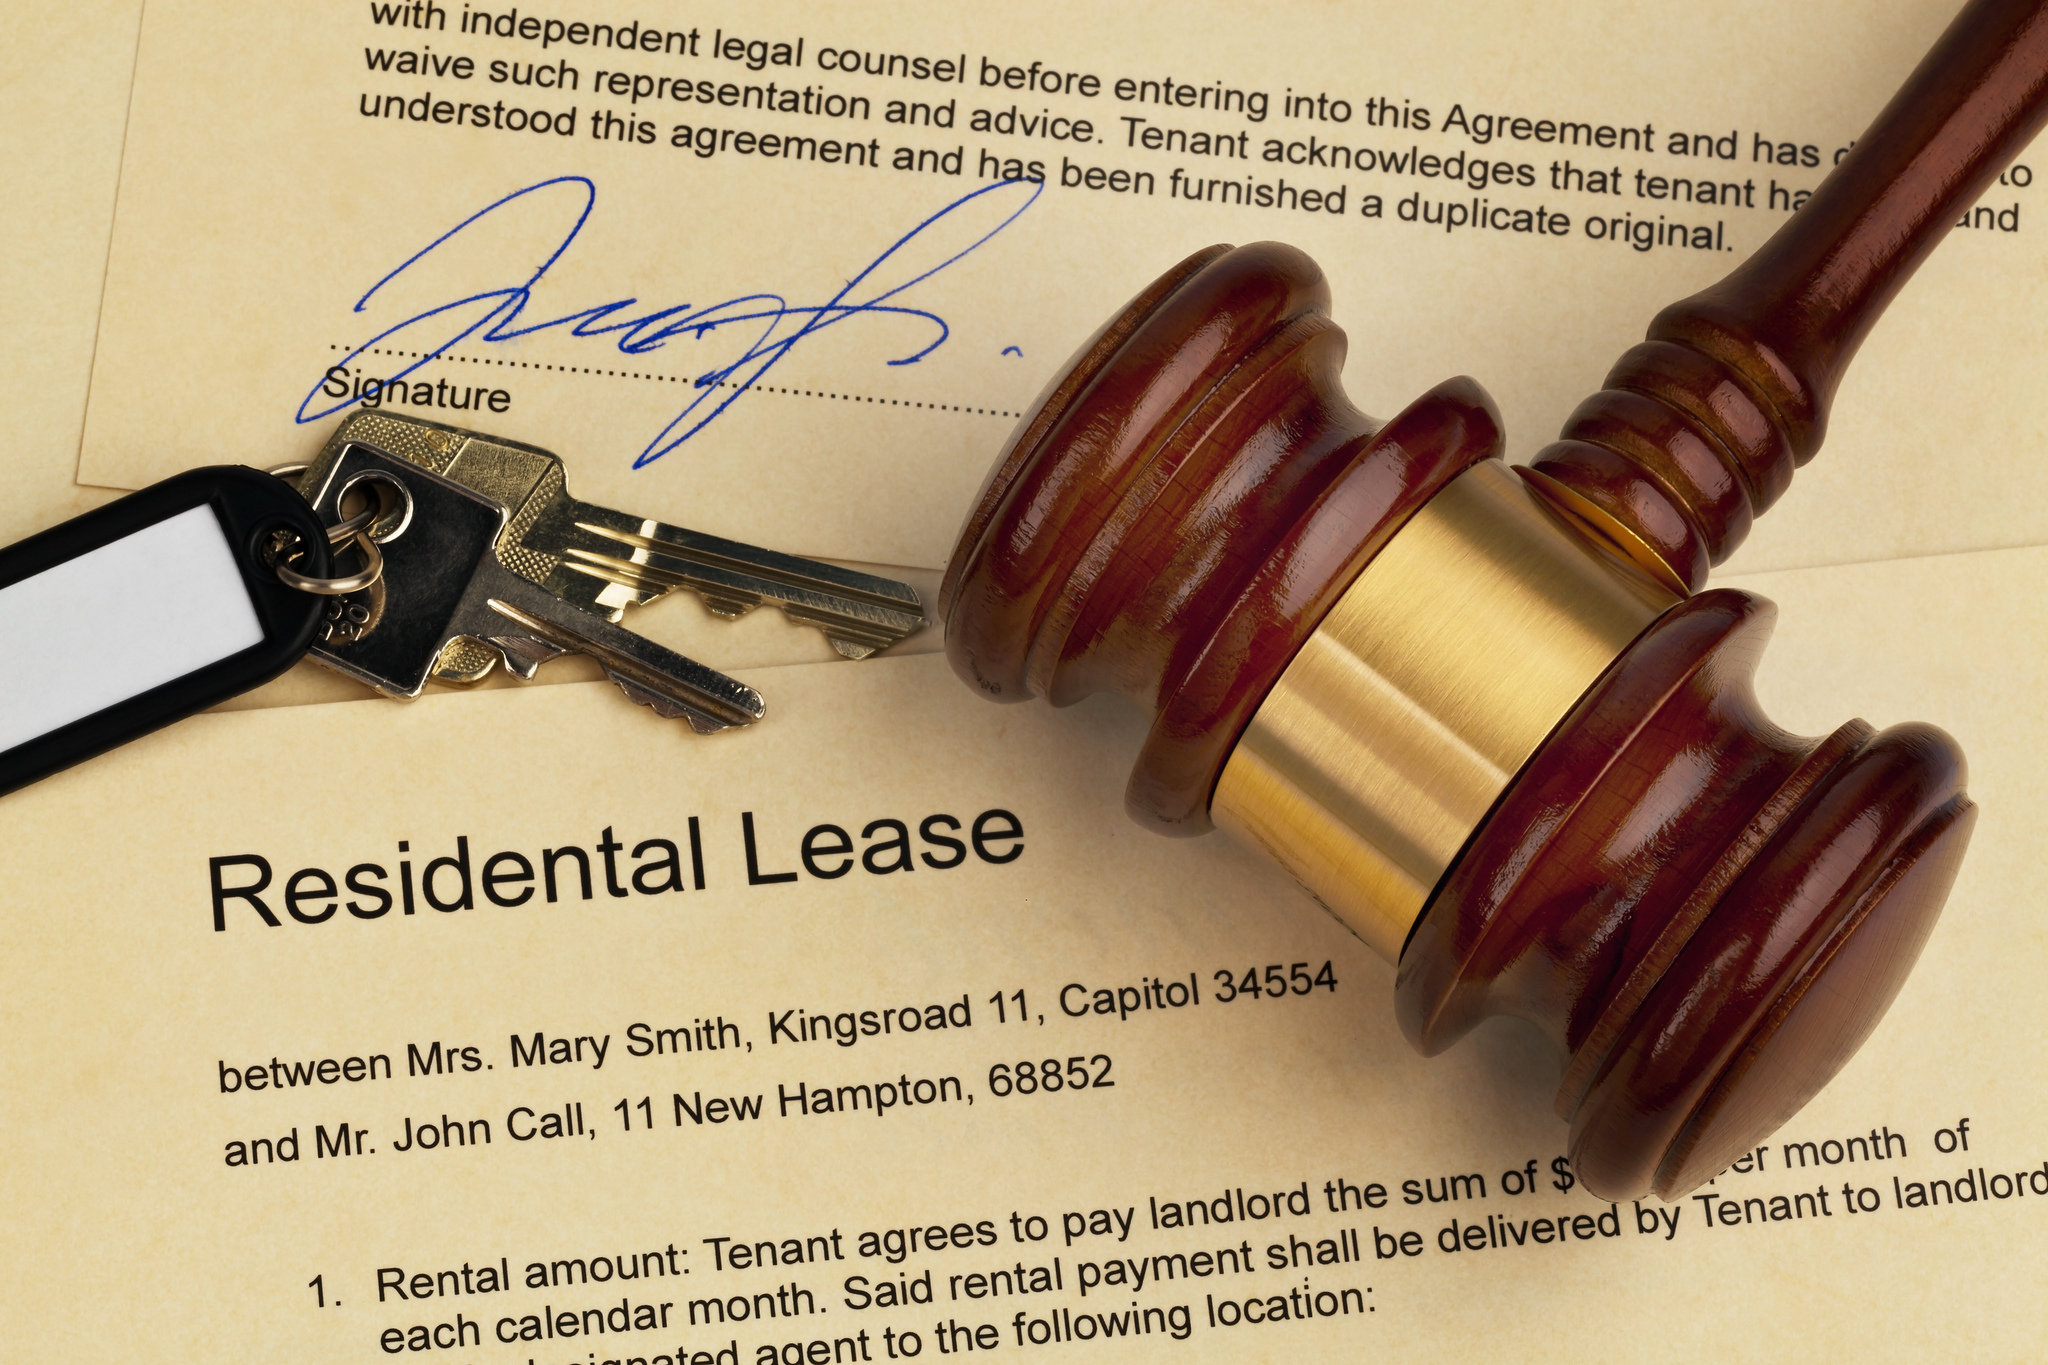 South Florida Attorney, South Florida Lawyer, Fort Lauderdale attorney, Fort Lauderdale Lawyer, West Palm Beach Attorney, Commercial/Business Litigation, Sports and Entertainment, Business Transactions, American's with Disabilities Act cases, Consumer Protection, Landlord/Tenant Matters, Personal Injury and Real Estate Litigation